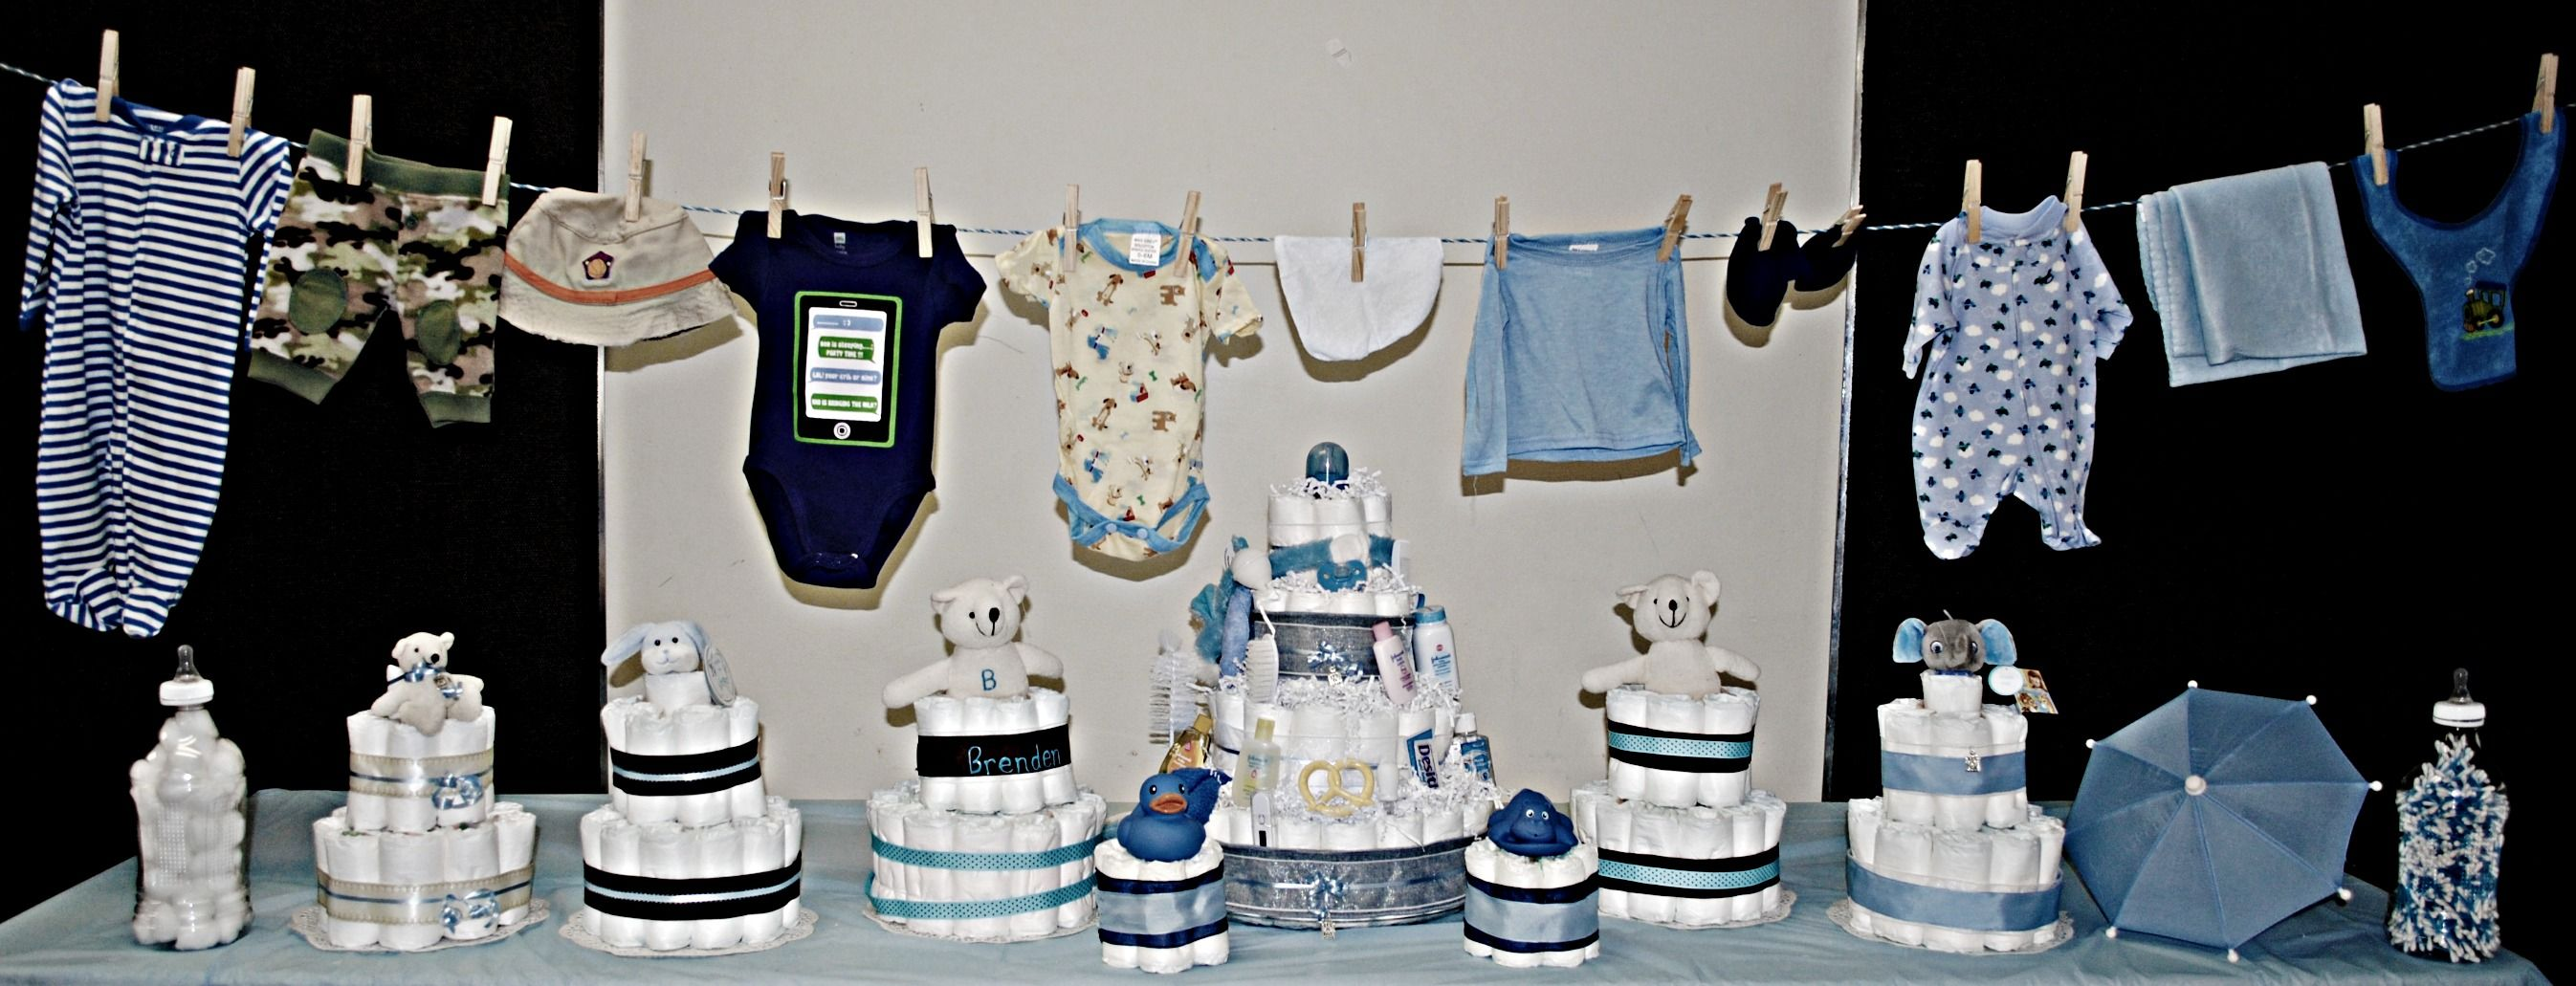 Baby Boy Shower set-up.  Smaller cakes are used as centerpieces for guest tables, over-sized bottles (made from v-8 splash bottles) were filled with cotton balls or q-tips and set out for guests to estimate the amount inside(as a game).  All are pictured below baby boy clothes that are hung from clothesline(baby blue rope from Dollar Tree).